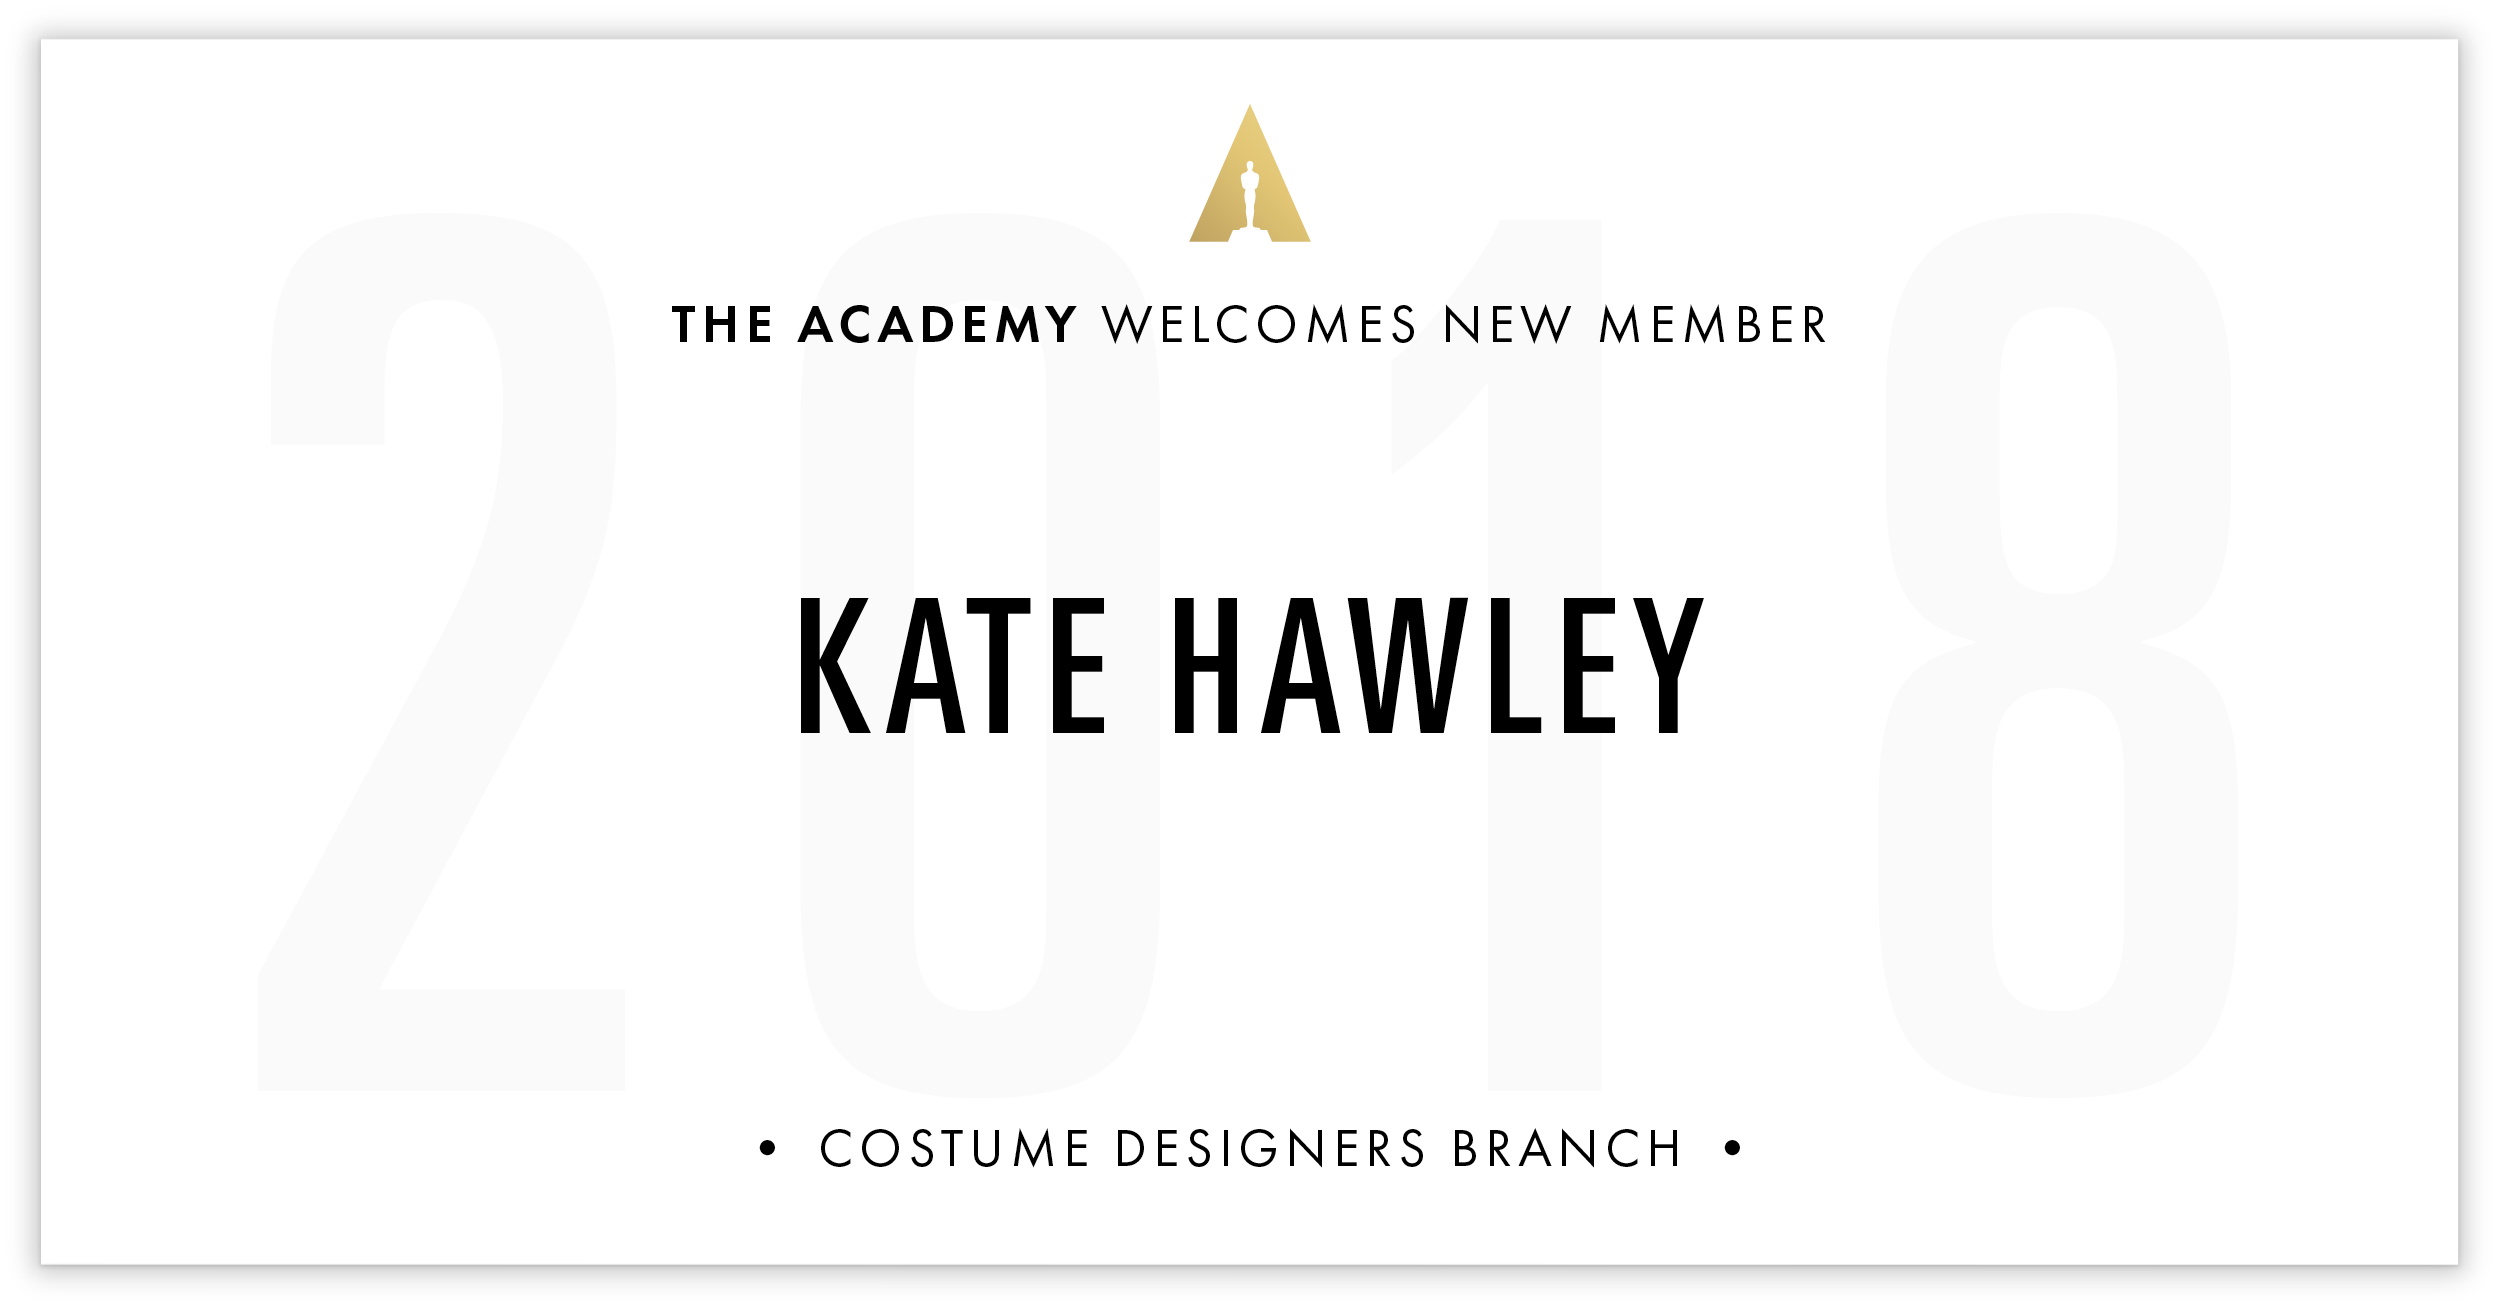 Kate Hawley is invited!